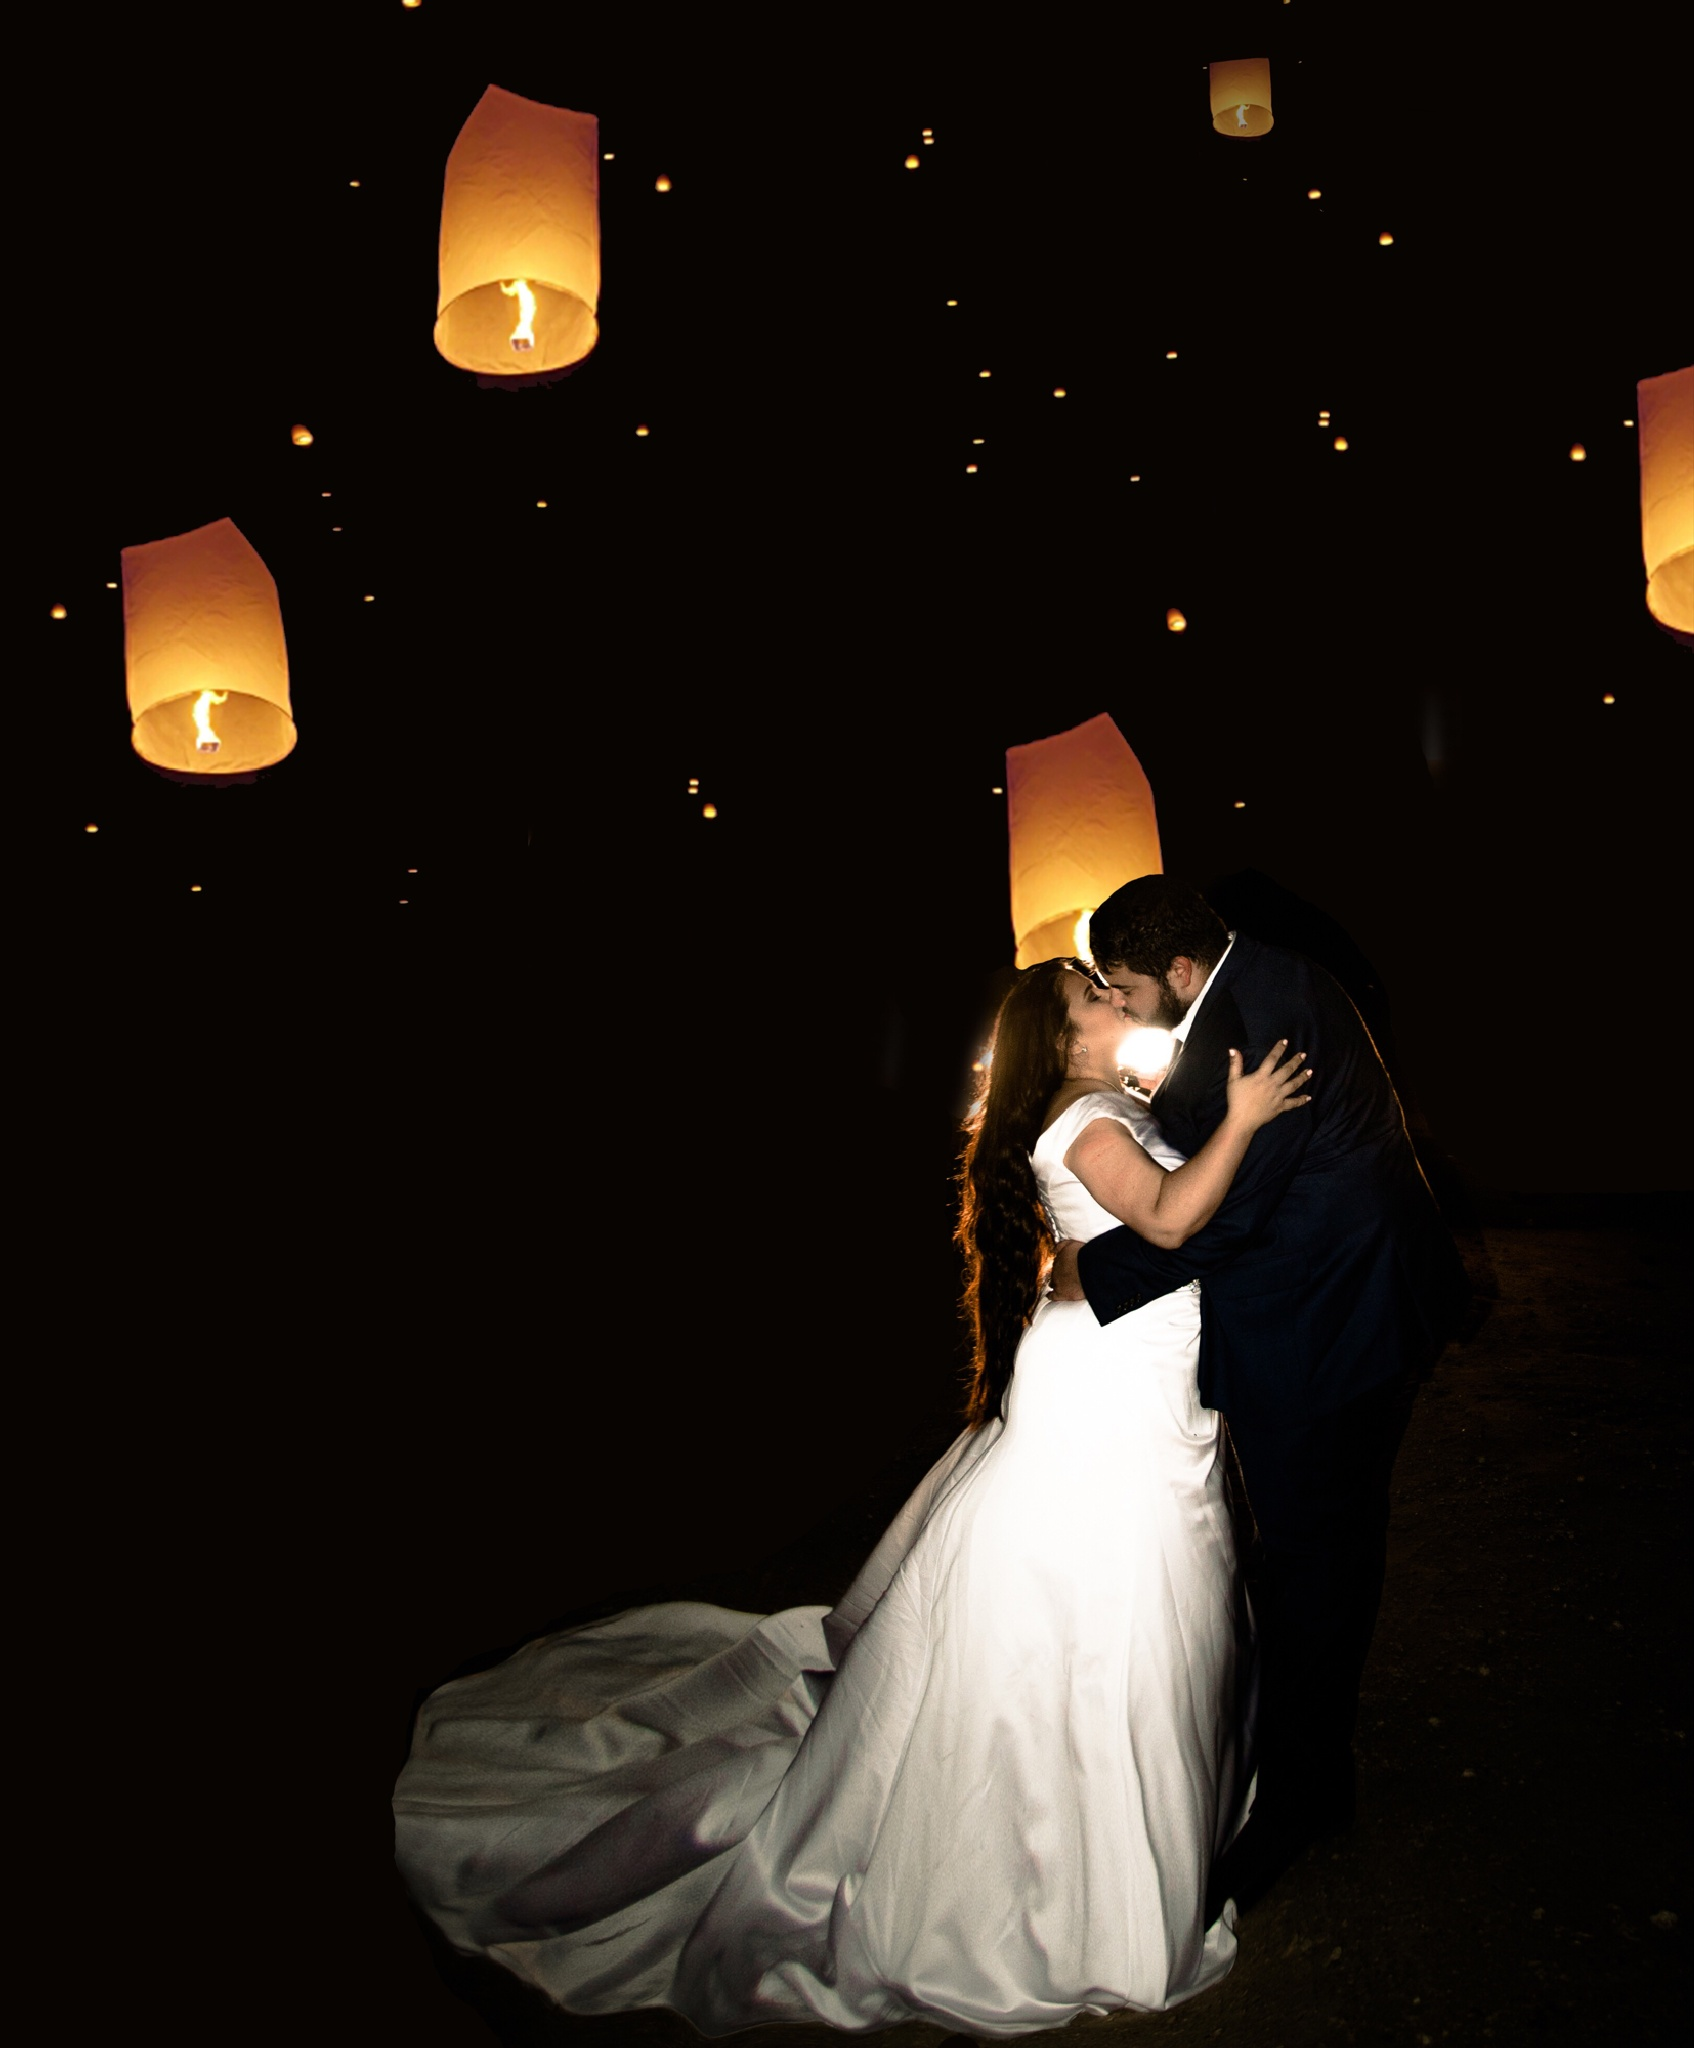 Magical wedding night by lifesatriphotography